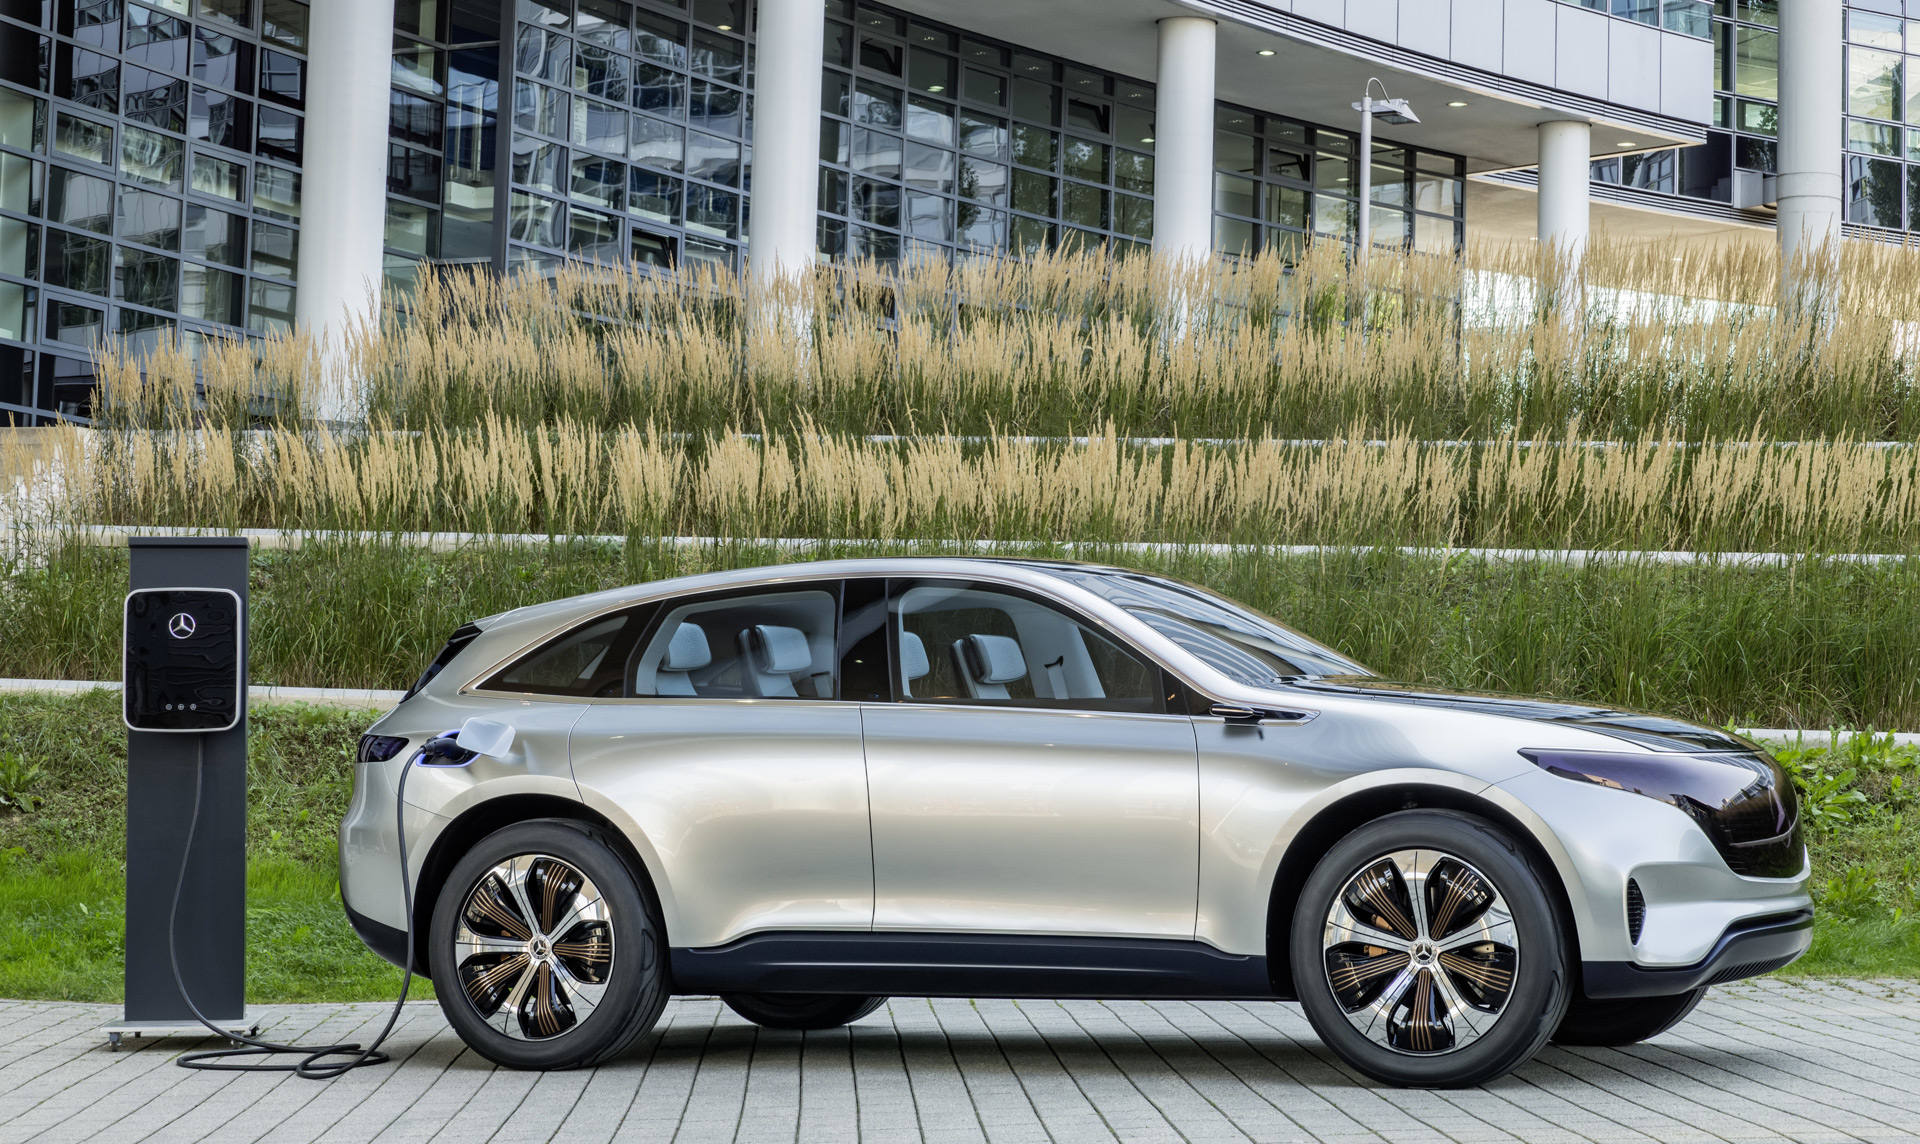 electric suvs, tesla model 3 in canada, and electric mercedes-benz